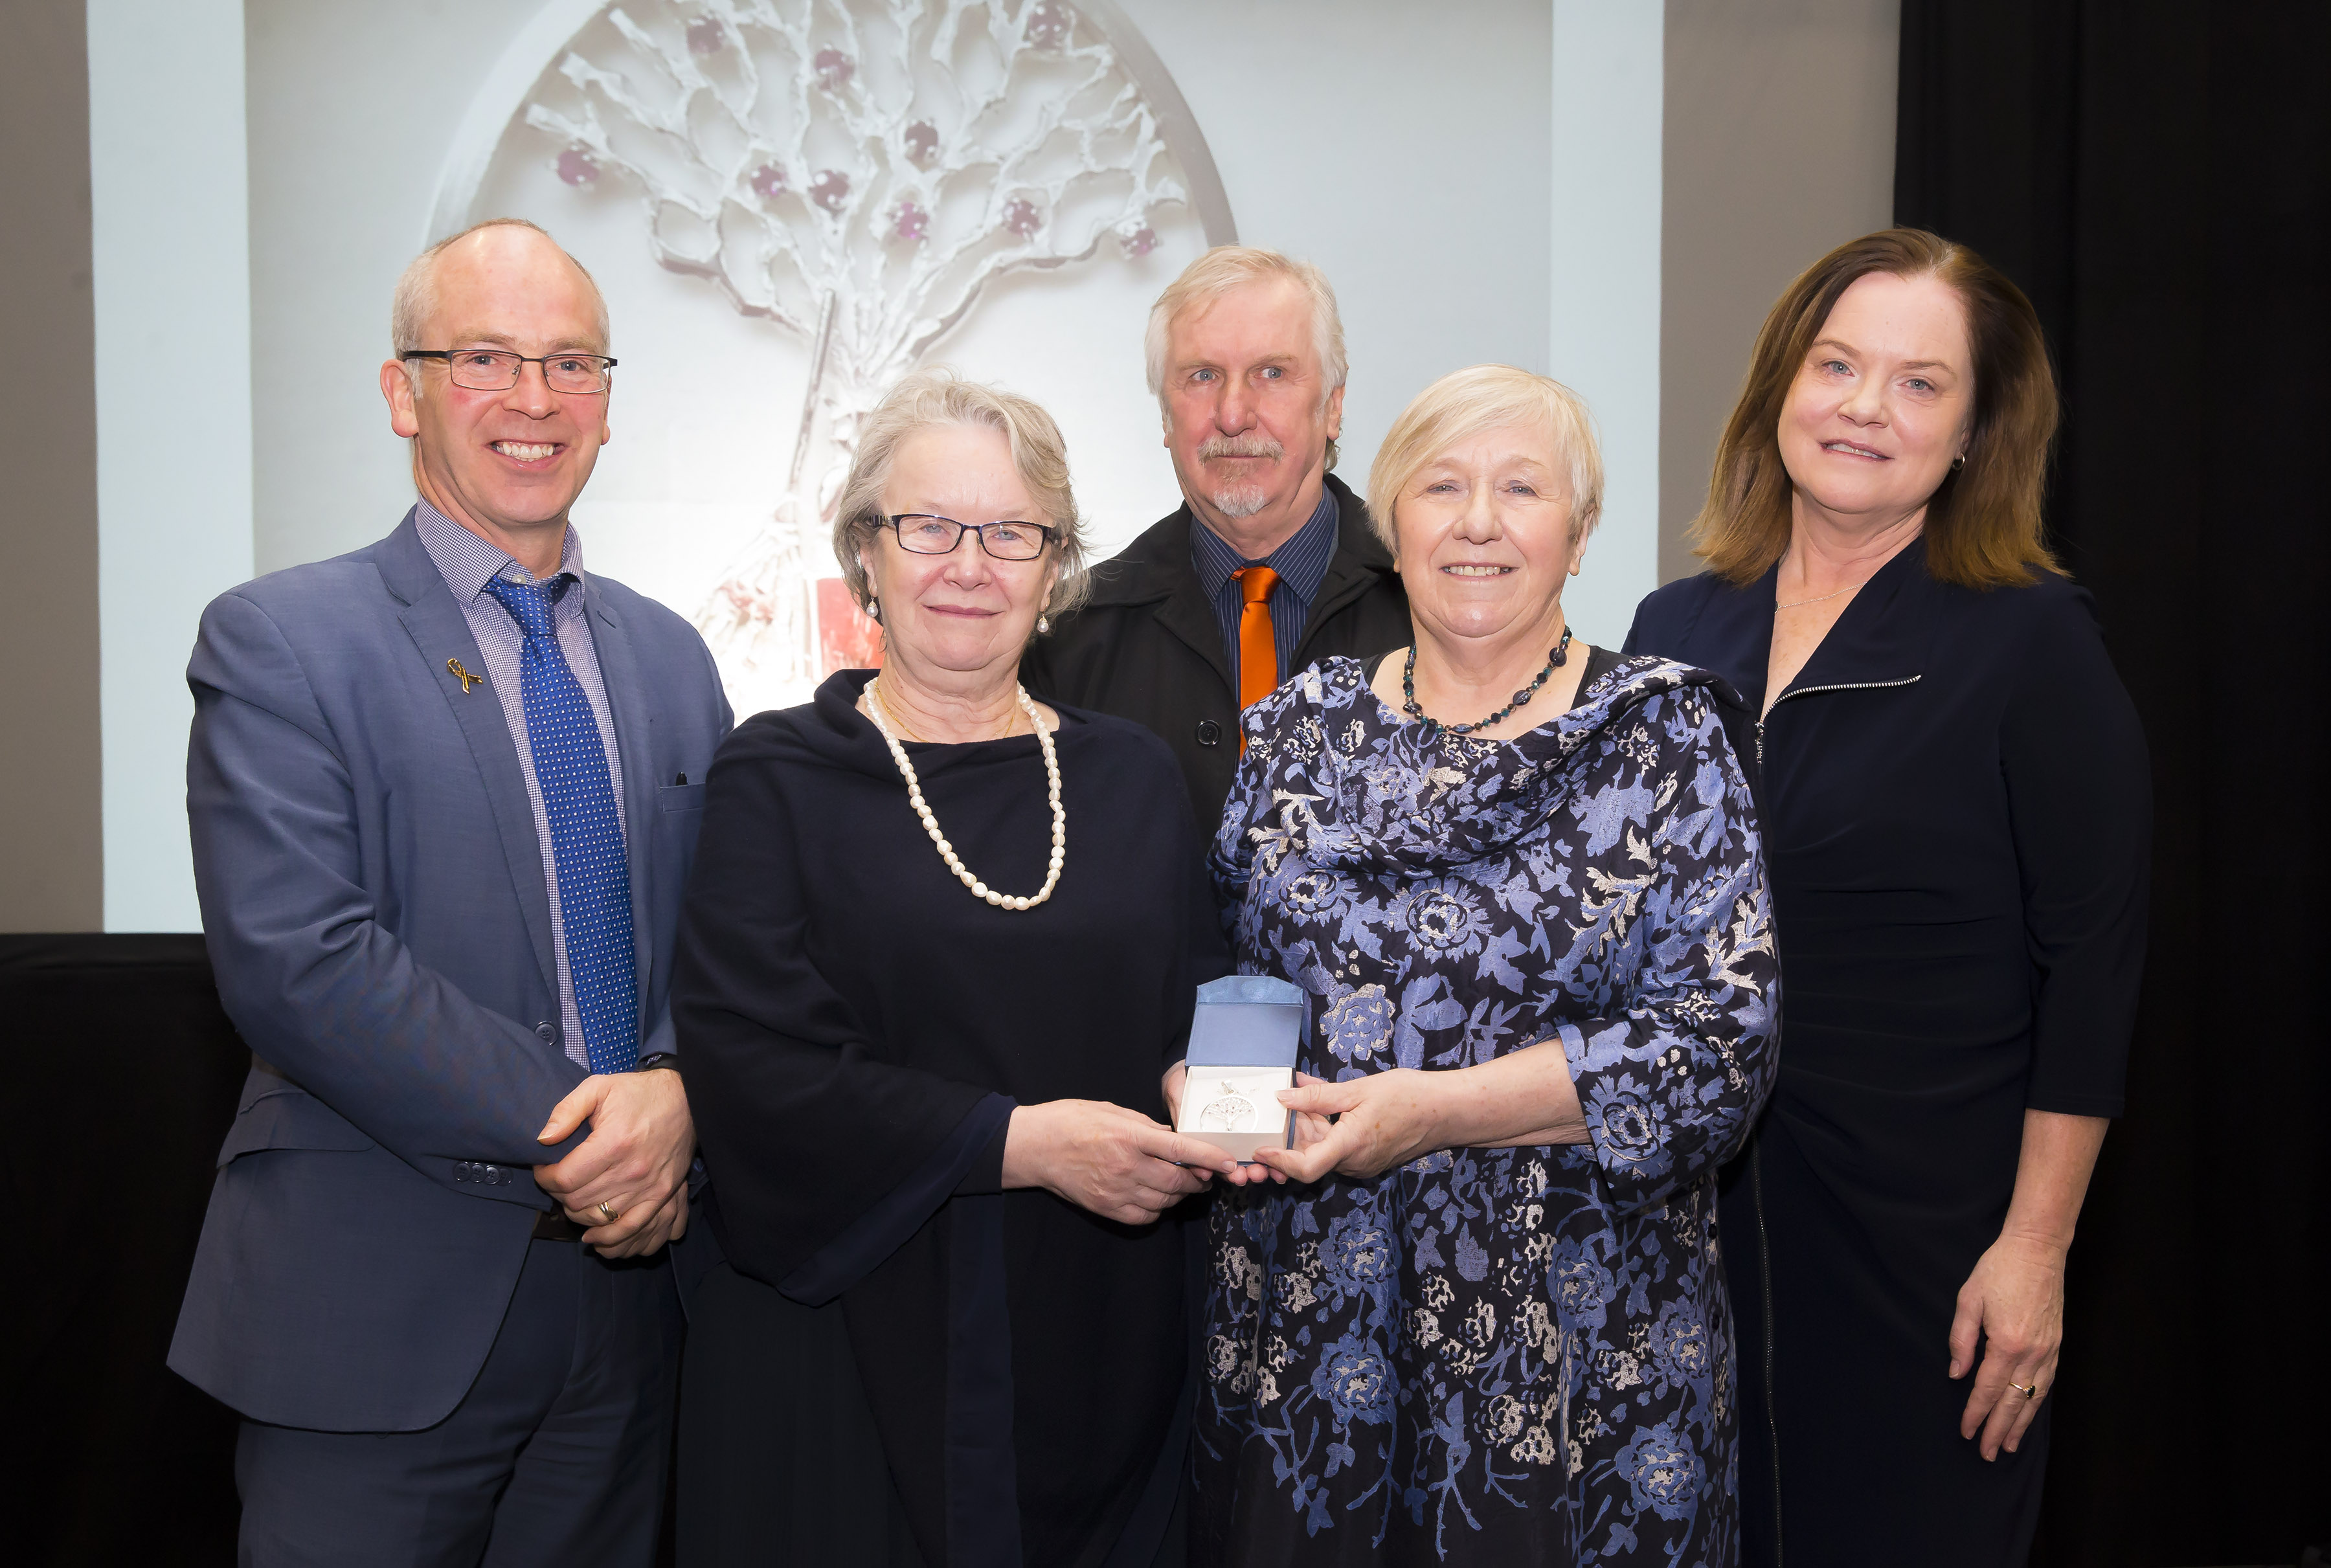 Pictured from left are Dr Peter McLoughlin, Head of the Scholl of Science & Computing, WIT, Patricia Billett, Aidan McDermott, Eva Creely, and Dr Orla O'Donovan, head of the Department of Science WIT